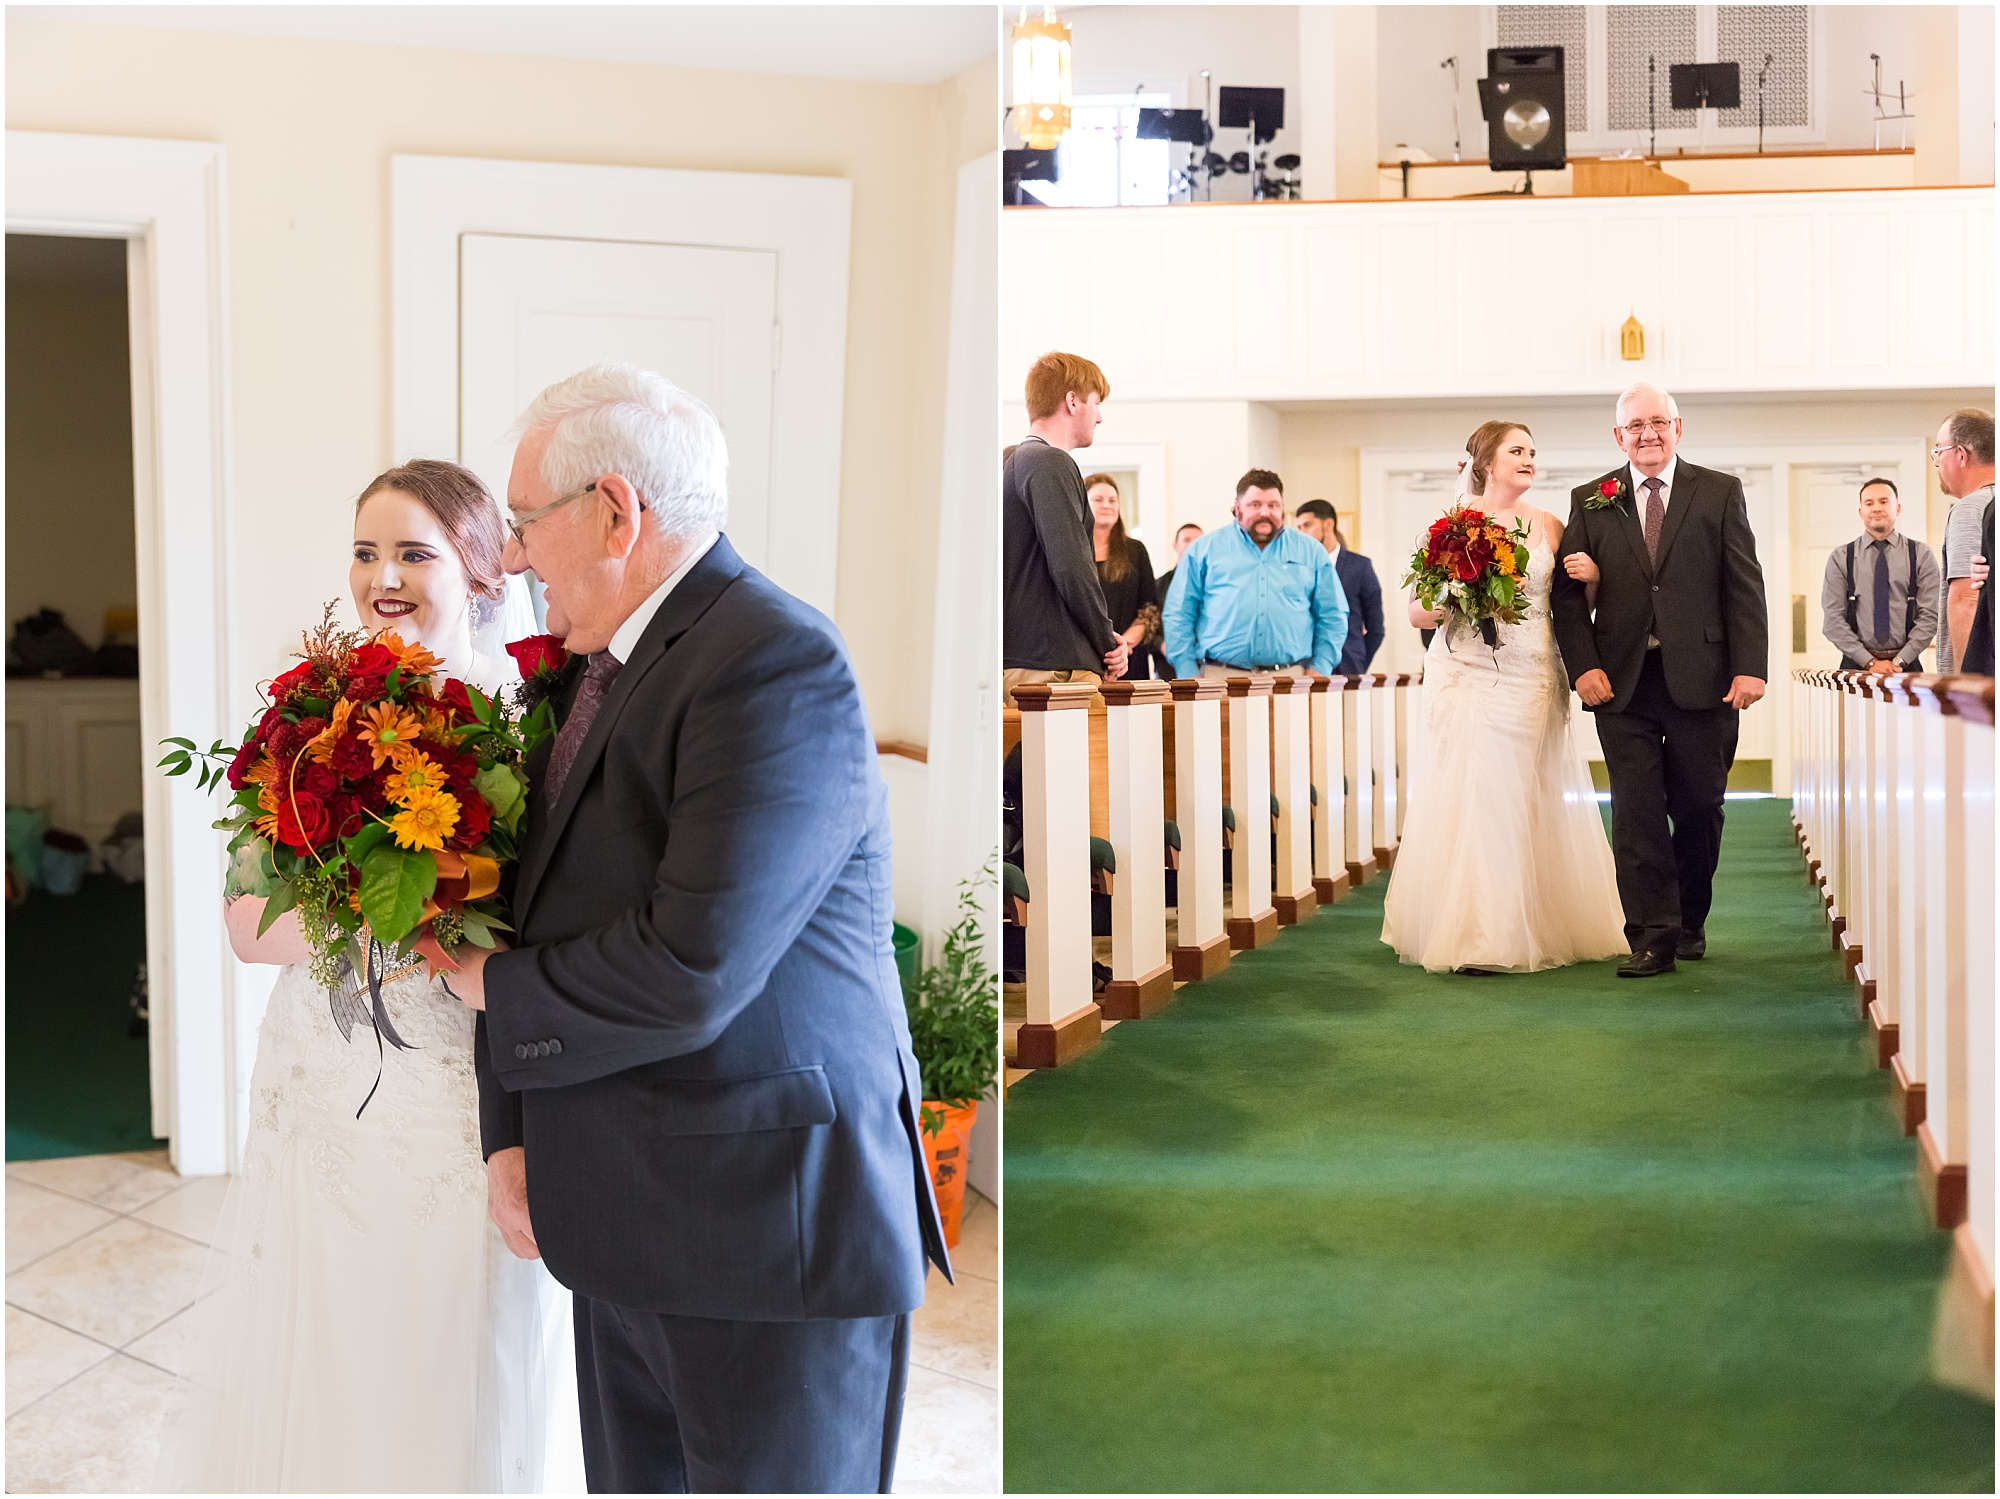 Grandfather walks bride down the aisle - Fall wedding in Waco, TX - Jason & Melaina Photography - http://jasonandmelaina.com